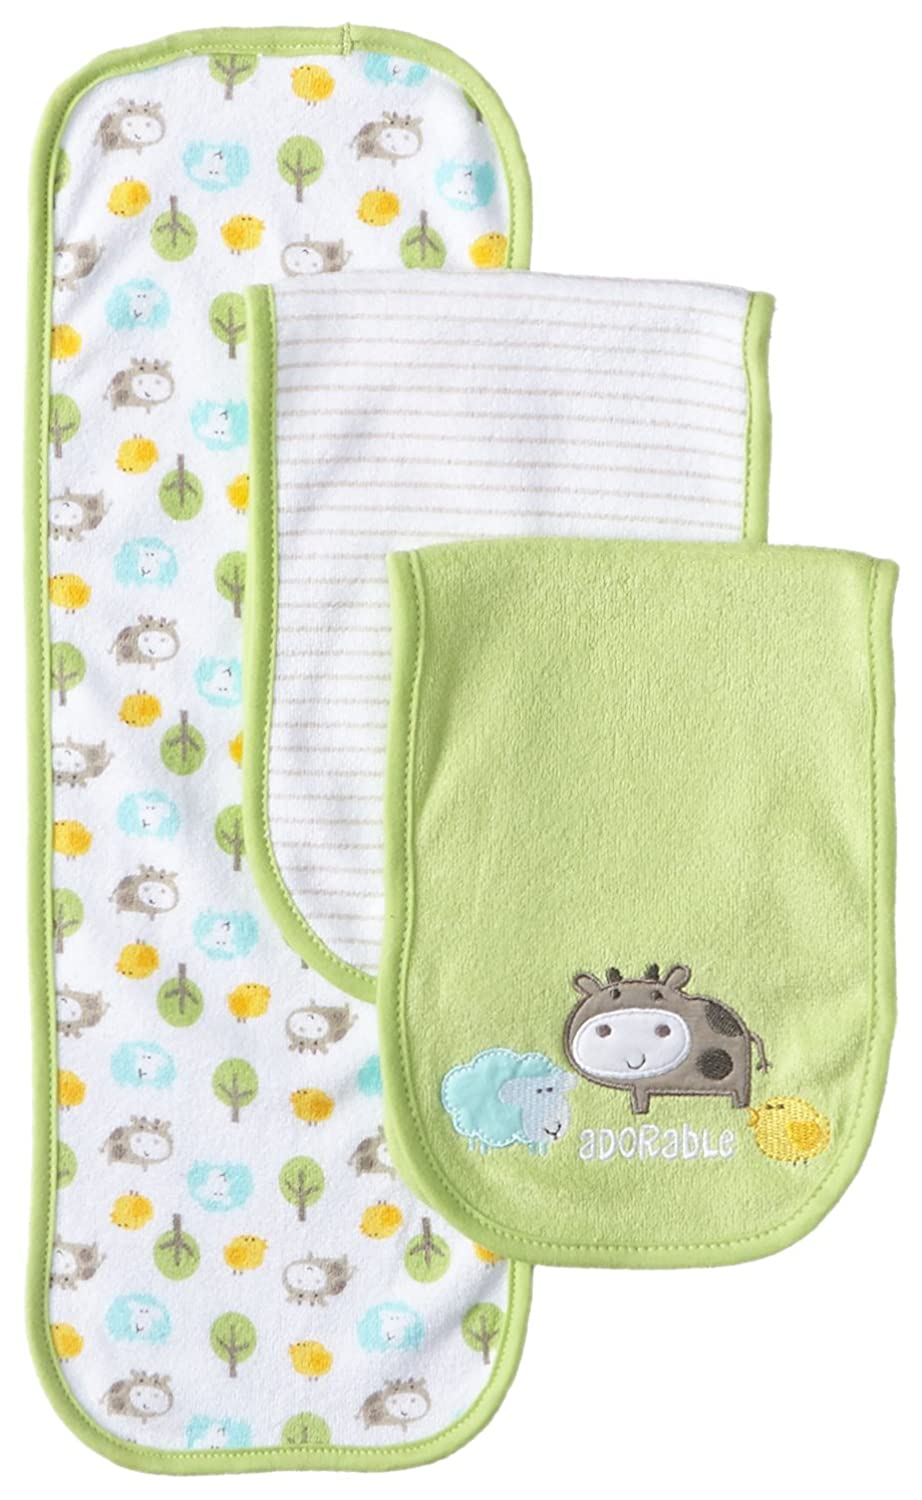 amazoncom gerber unisexbaby newborn 3 pack neutral terry burp cloths yellow one size clothing